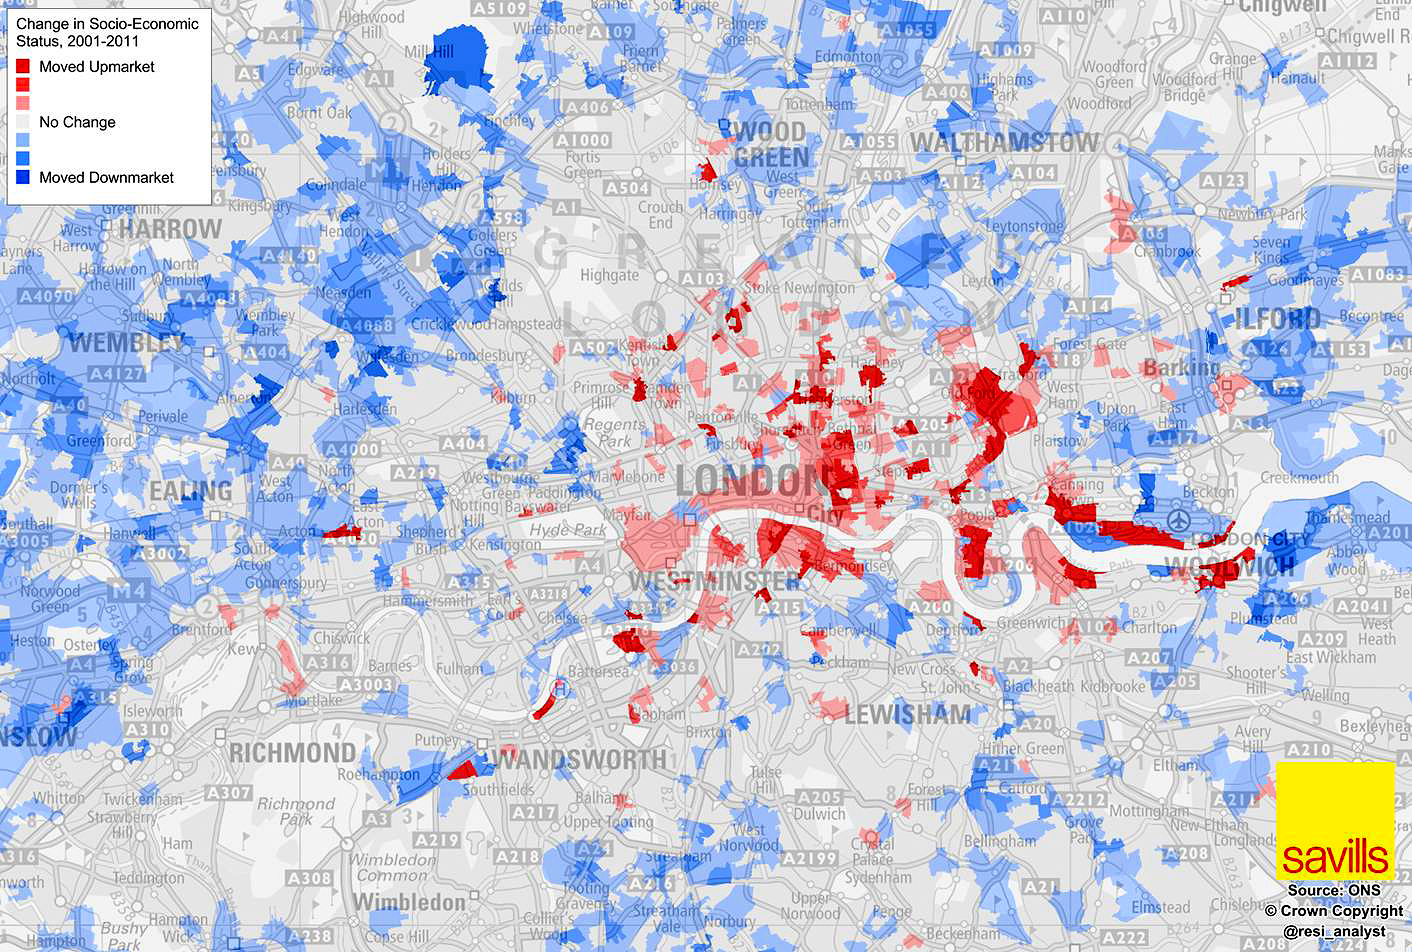 Gentrification Map Savills